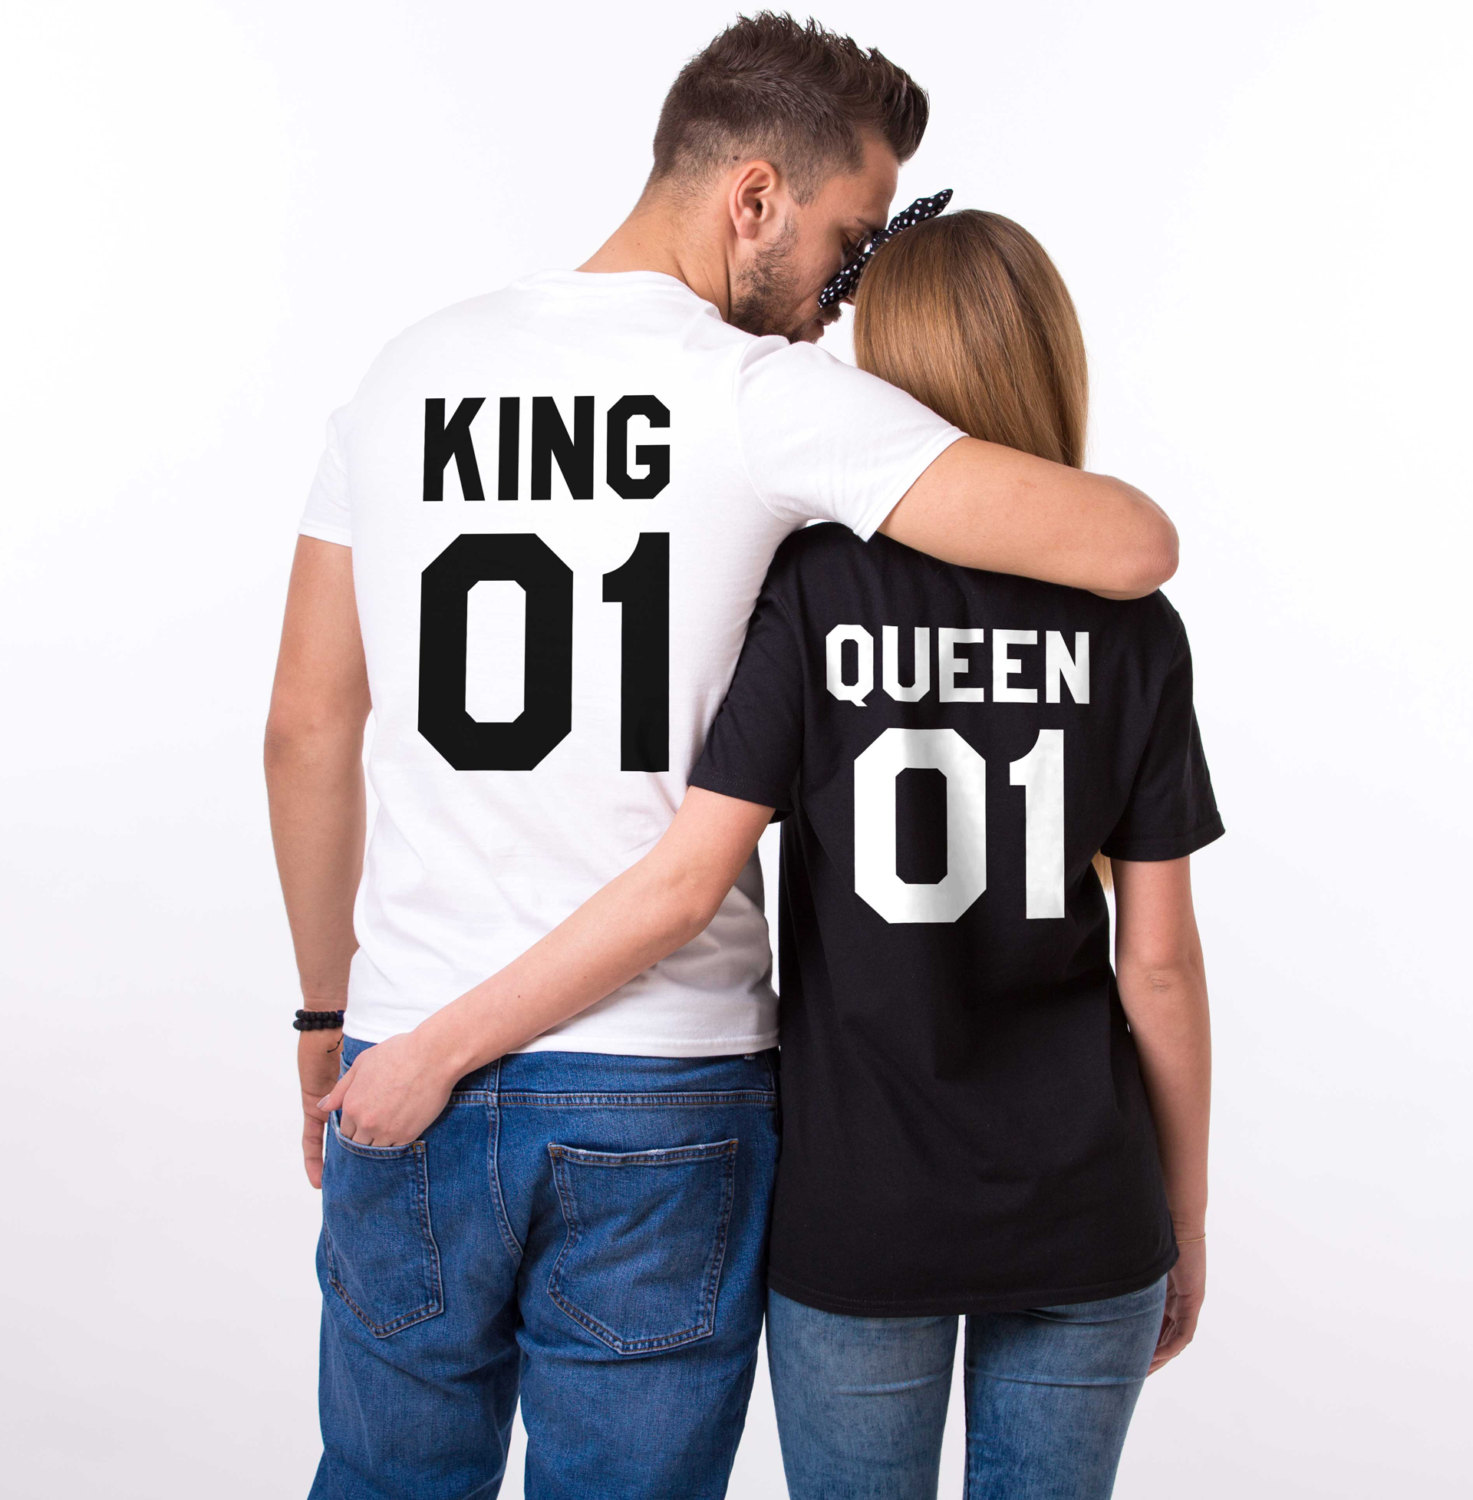 King Queen 01, Bestseller Matching Couple Shirts